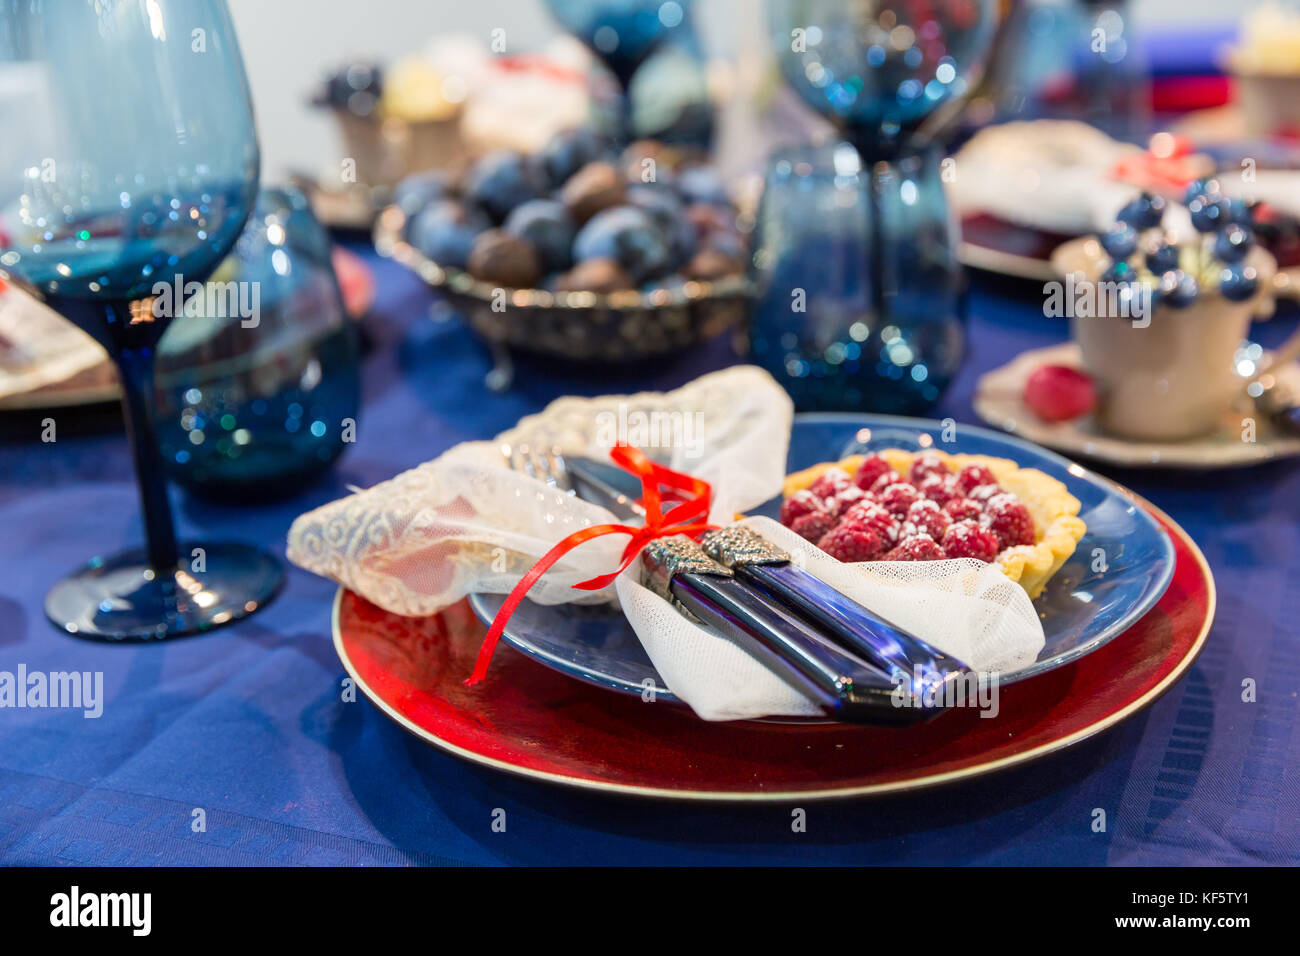 Table with food decoration closeup, nobody - Stock Image